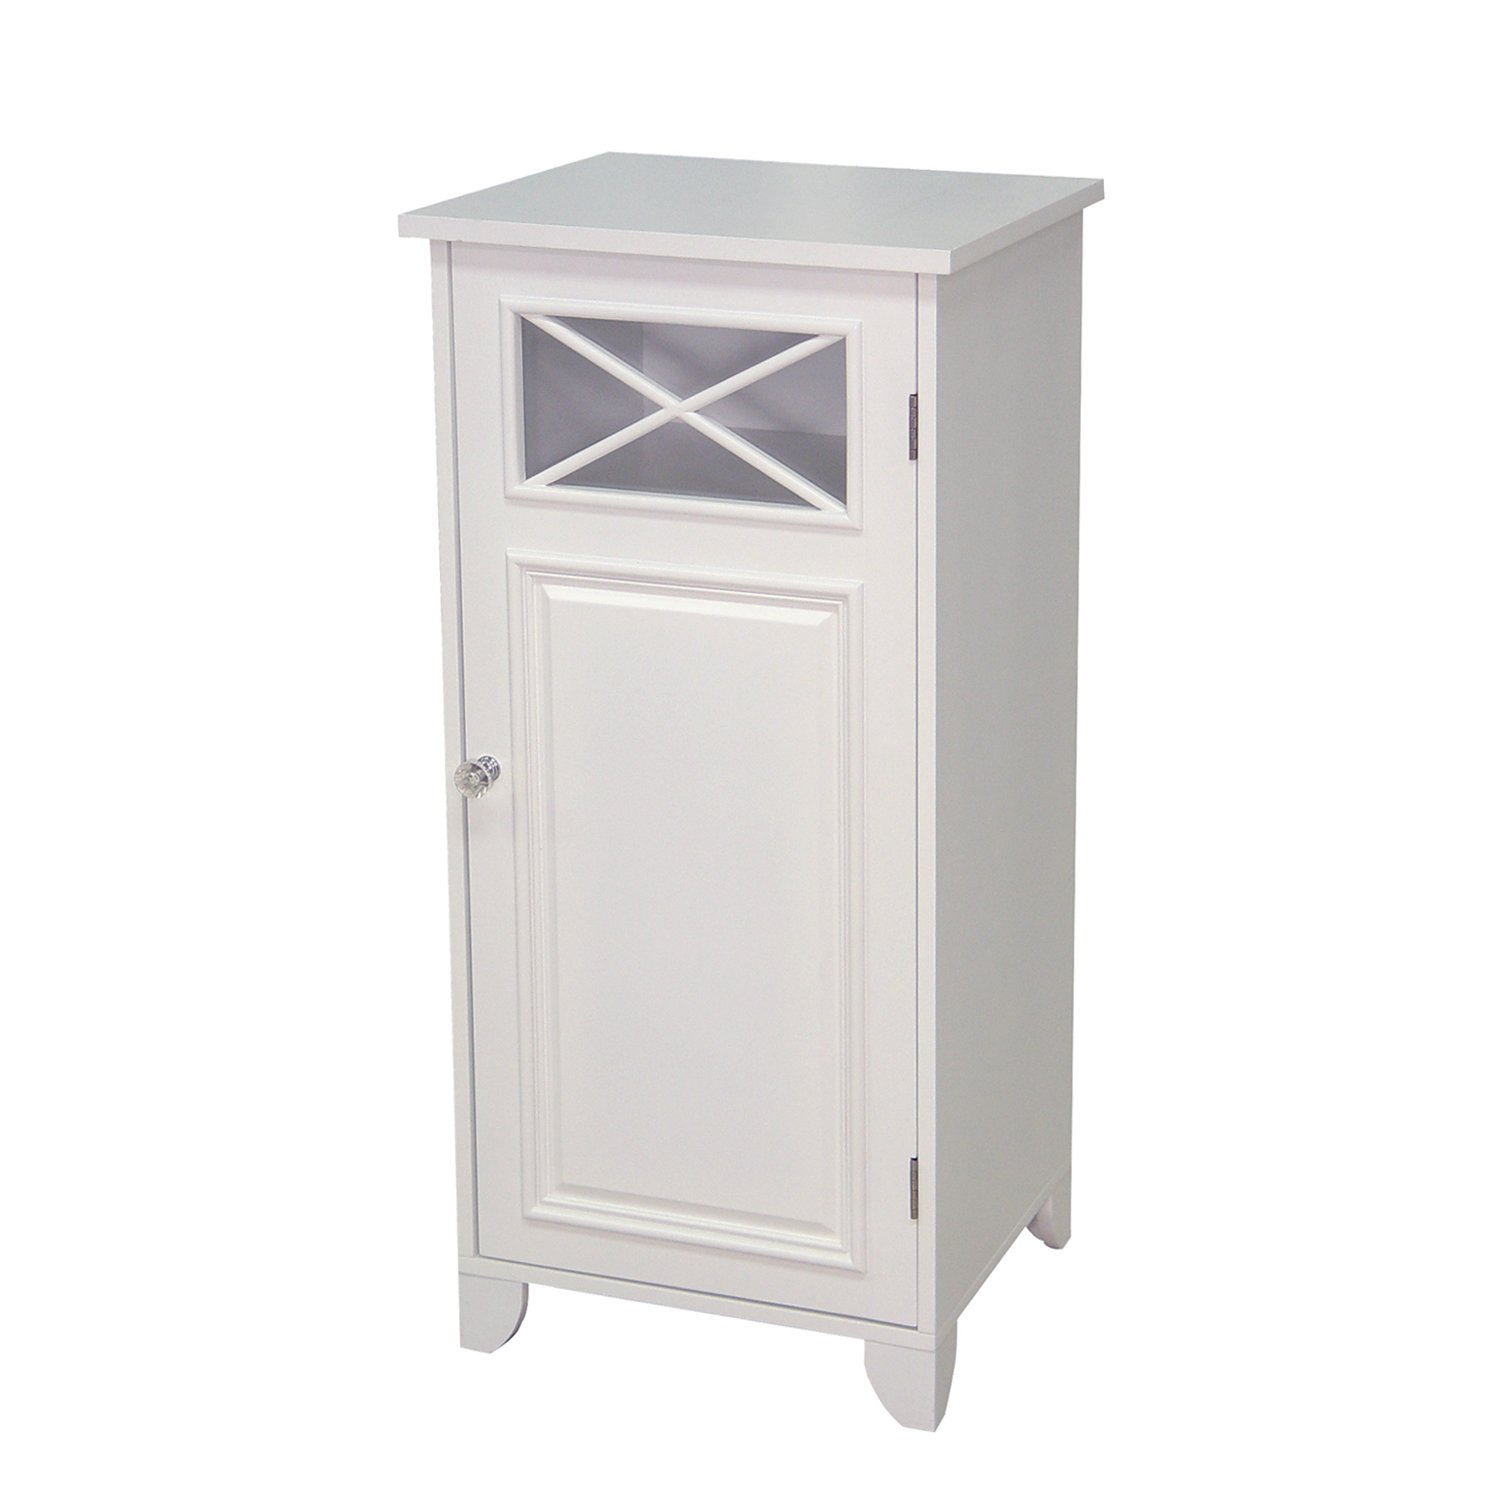 Amazon com elegant home fashions dawson floor cabinet with single door white kitchen dining